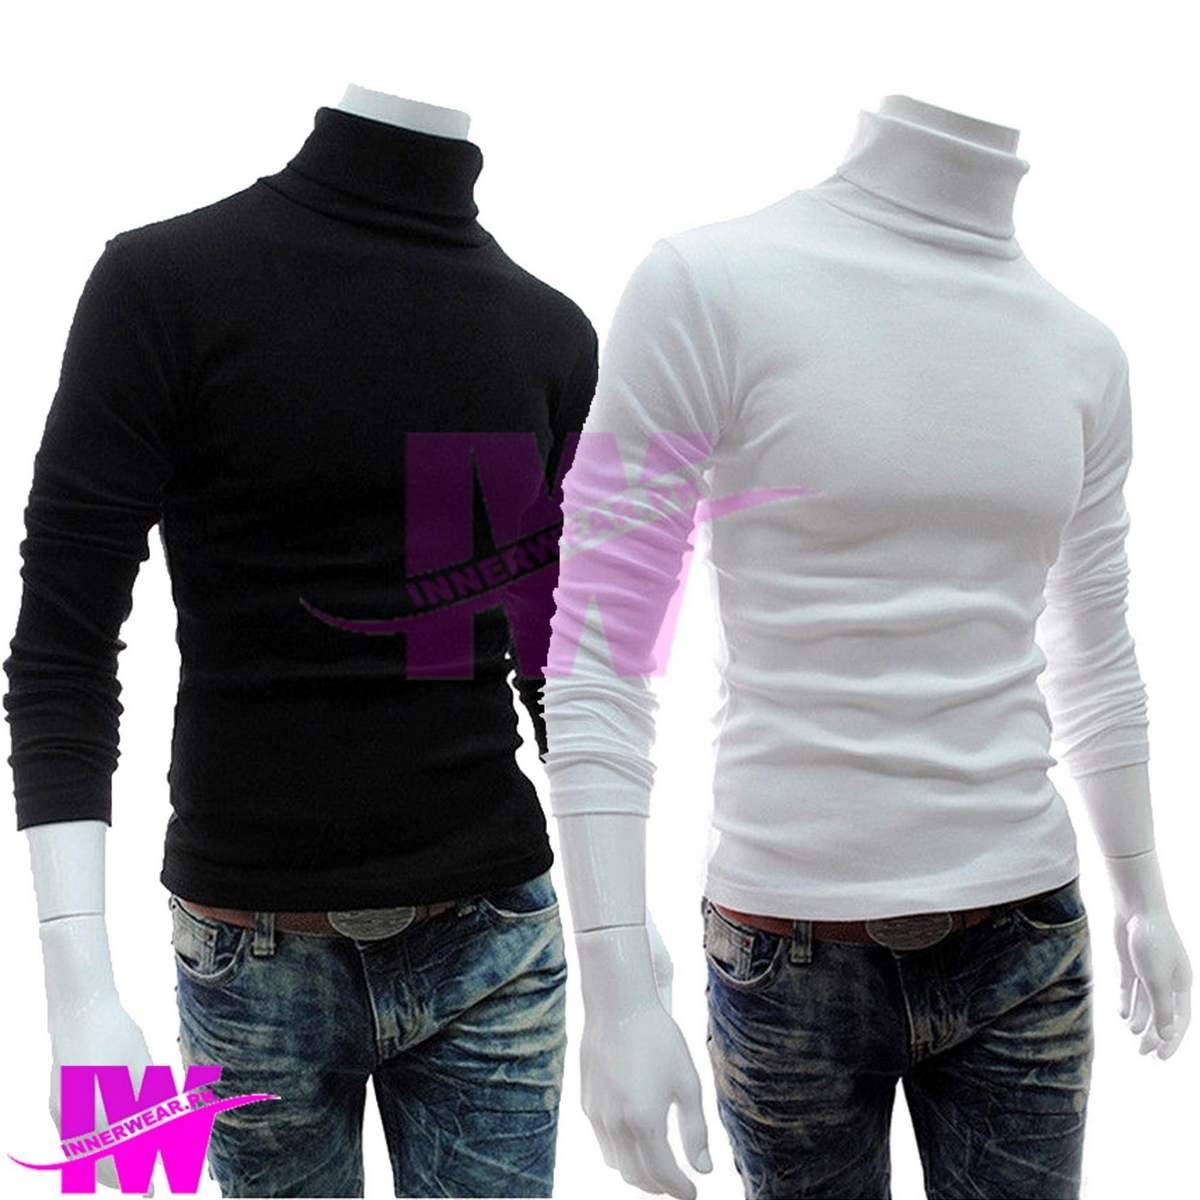 Pack of 2 Men Premium High Neck White and Black Full Sleeve Pullover Stretchable Ribbed Cotton & Lycra T-Shirt Turtleneck Tops Sweatshirt Winter Warm Free Size Every Fitter Special offer InnerWear pk